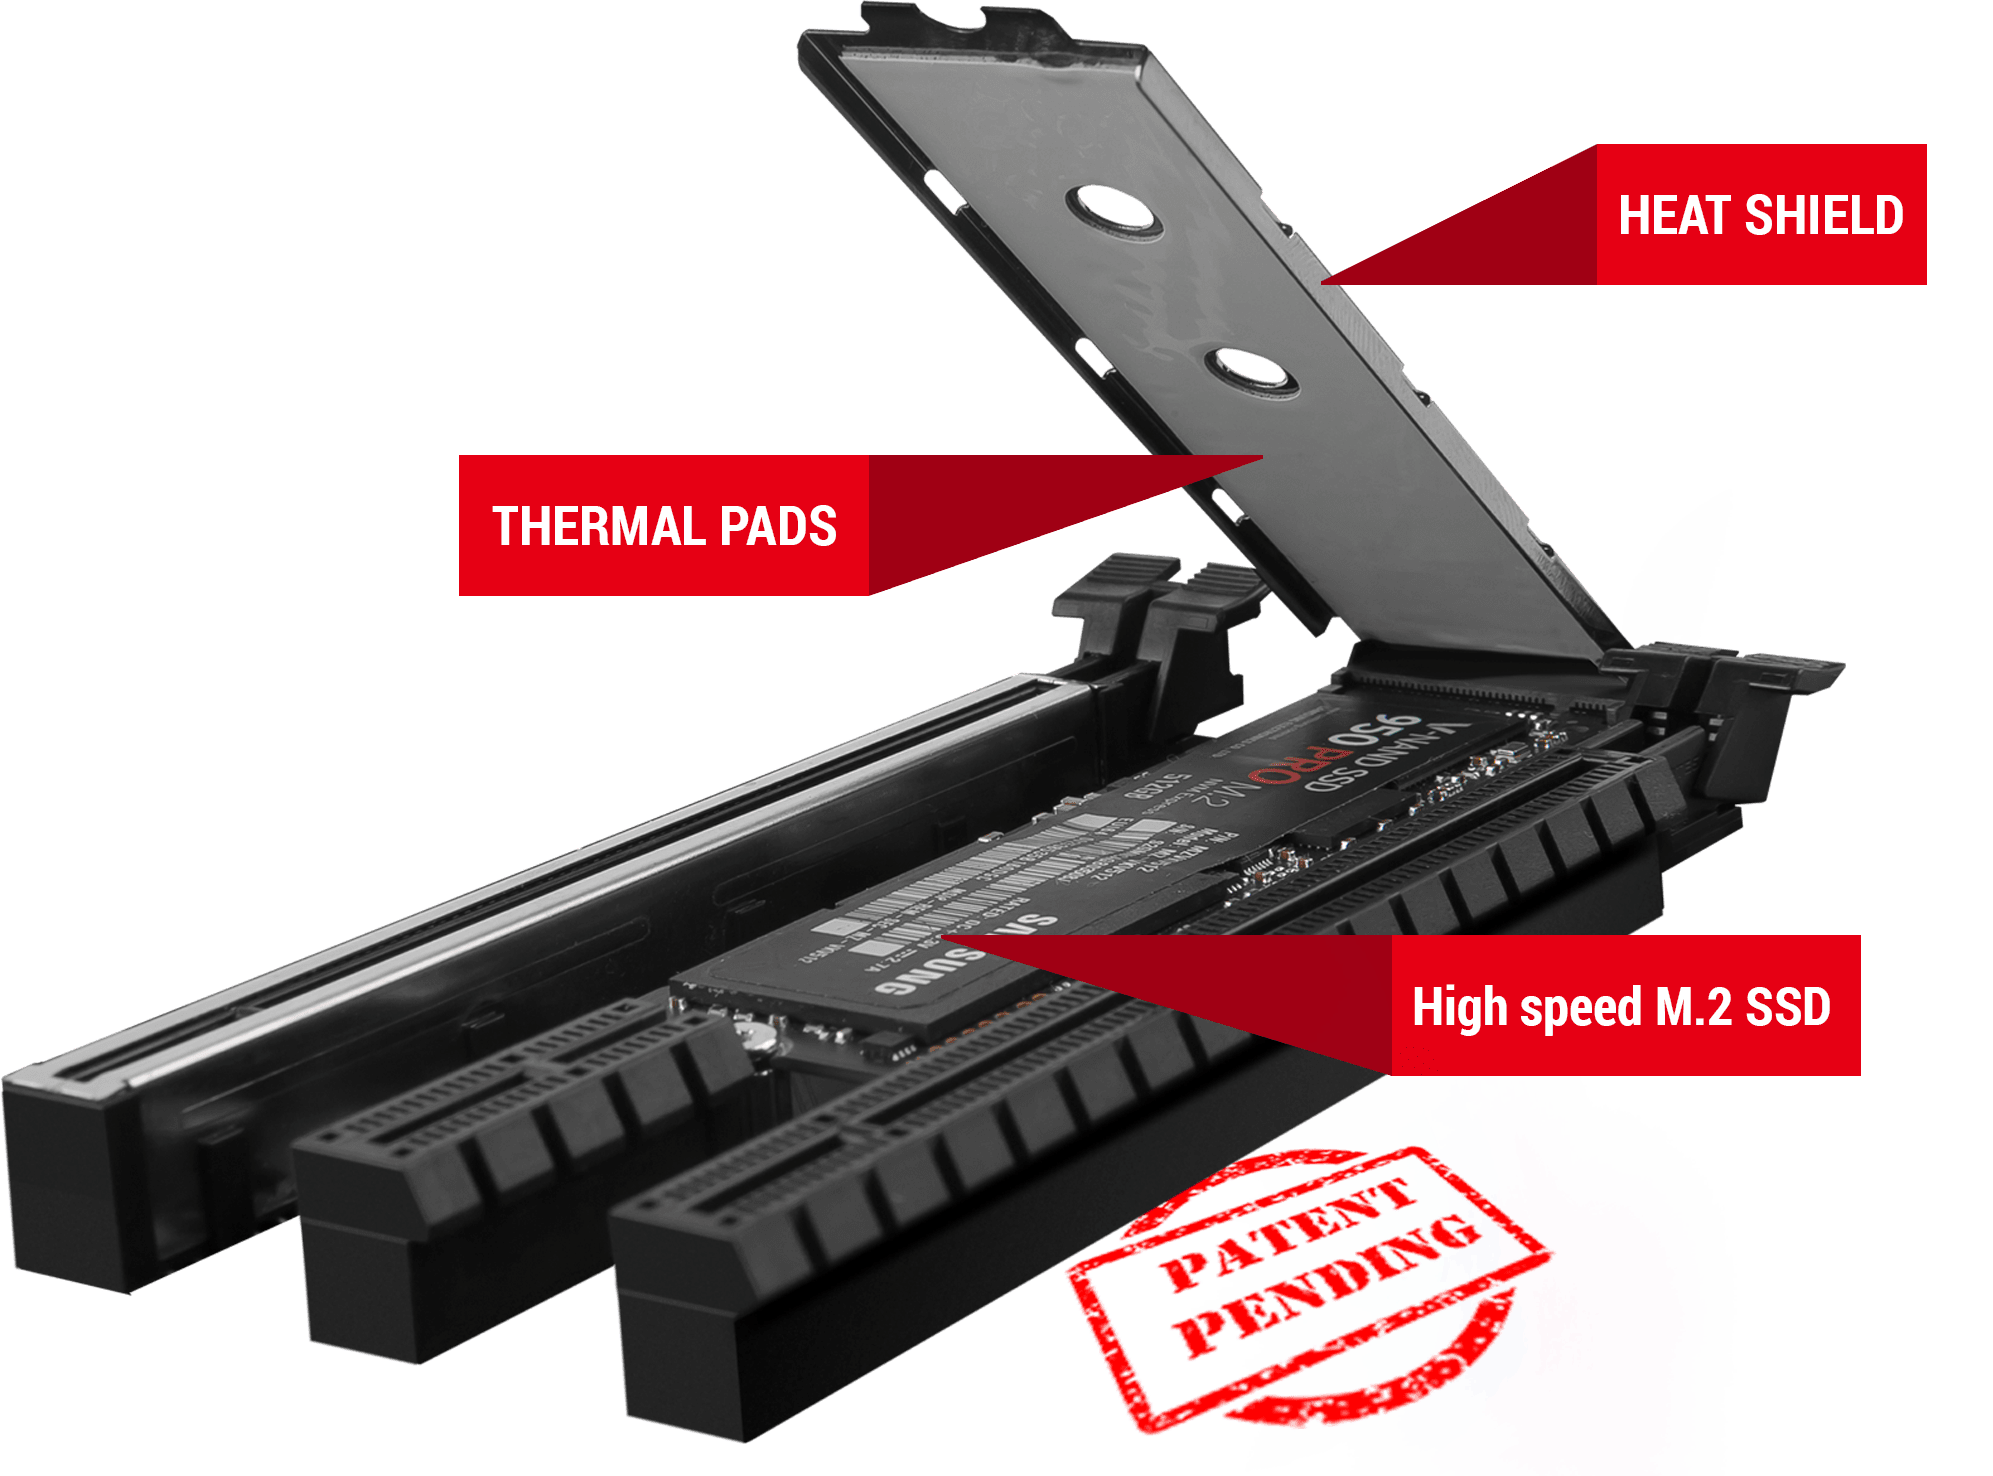 MSI Next Generation AM4 Motherboard  Rise Back To Glory